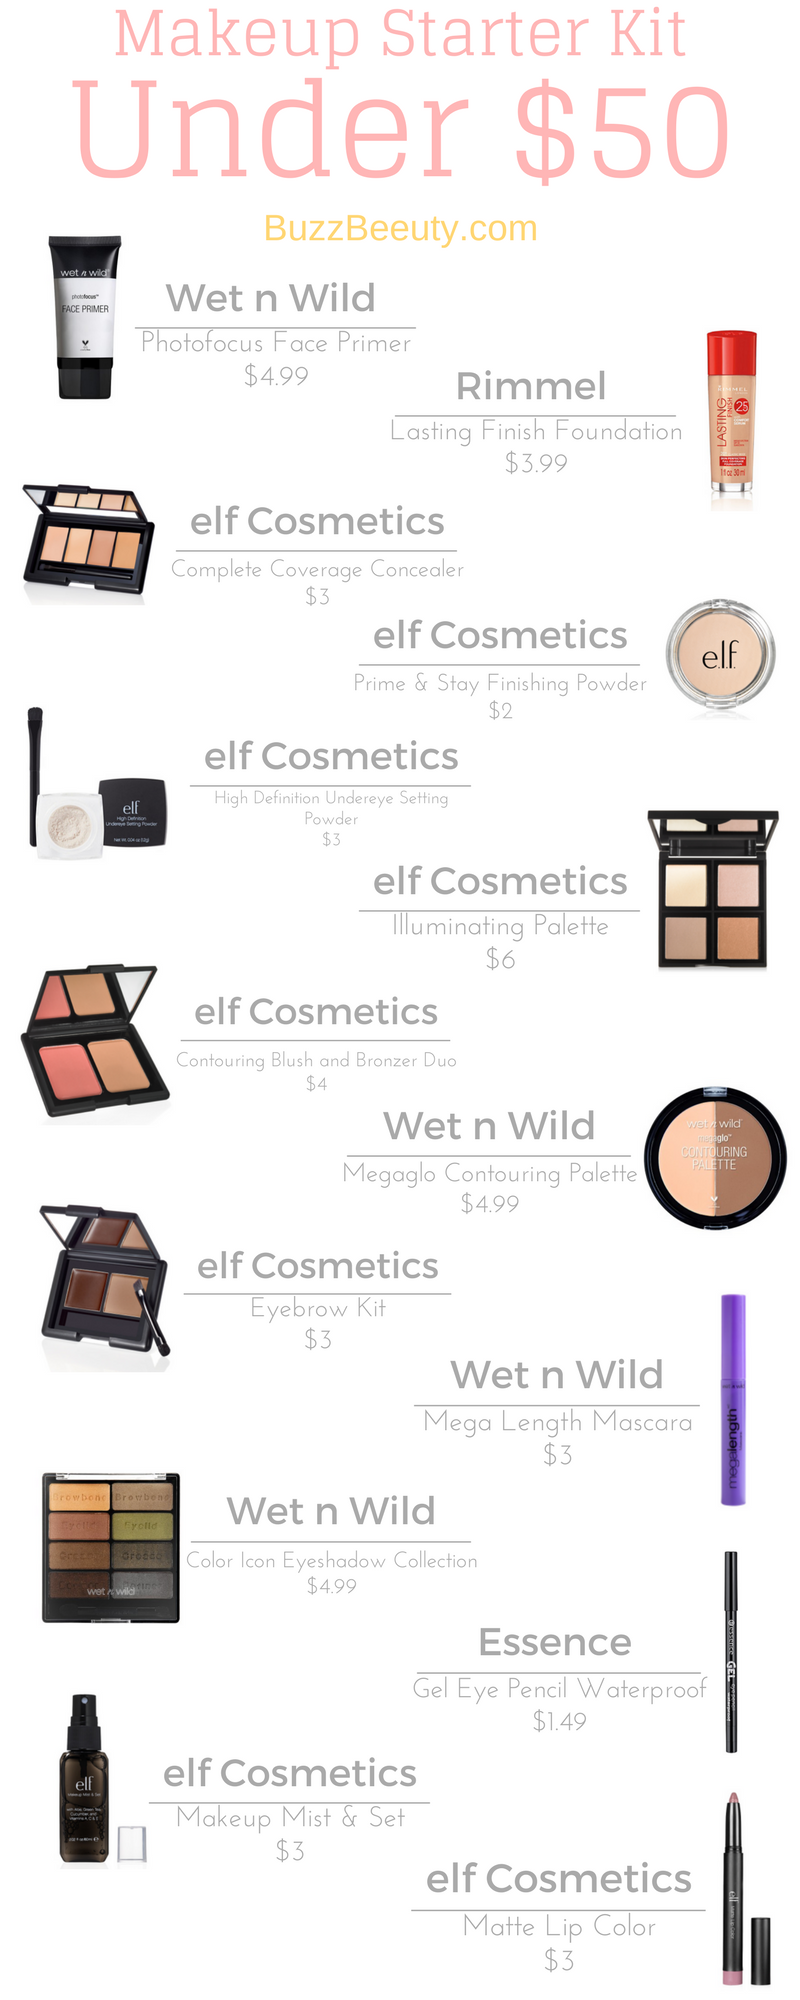 Buzzbeeuty Makeup Kits On A Budget Starter Kits Under